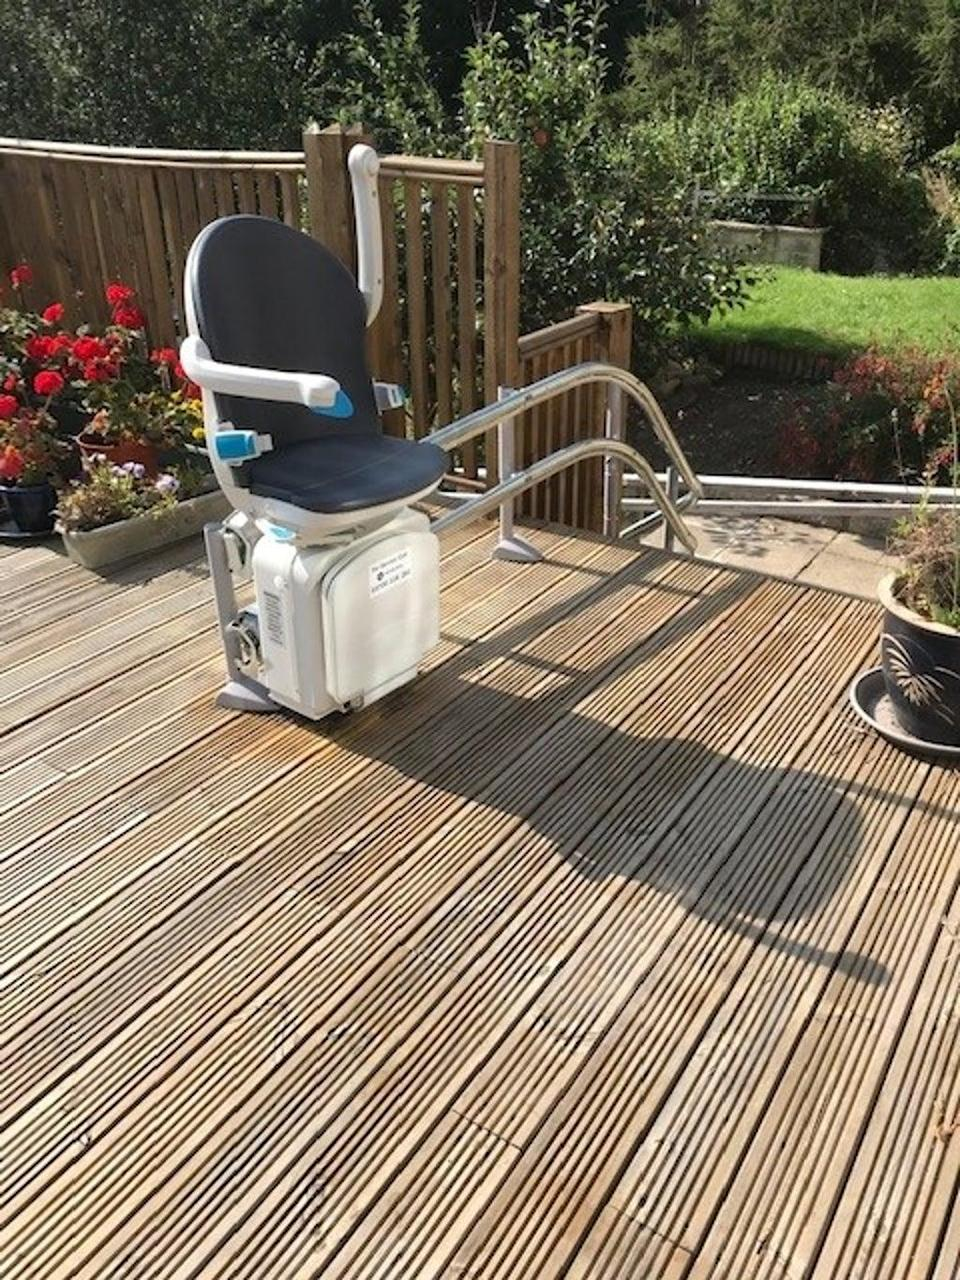 External Stairlift costing £18,000 fitted in 2020. Credit: Marie Stinson